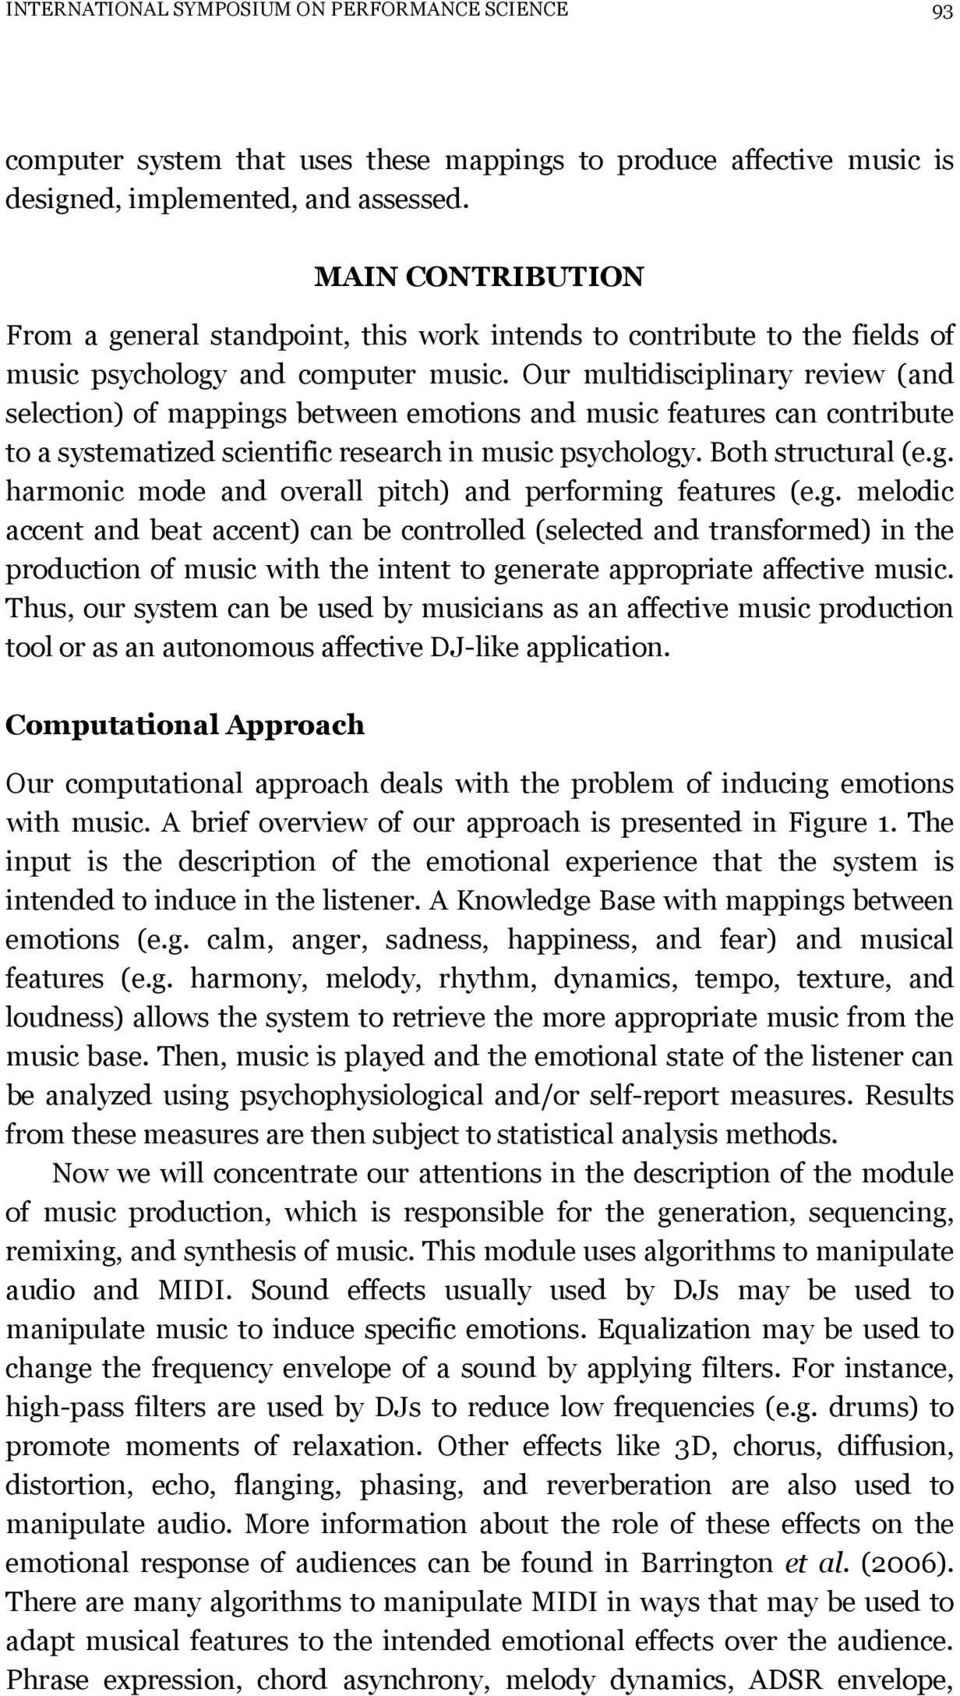 Our multidisciplinary review (and selection) of mappings between emotions and music features can contribute to a systematized scientific research in music psychology. Both structural (e.g. harmonic mode and overall pitch) and performing features (e.